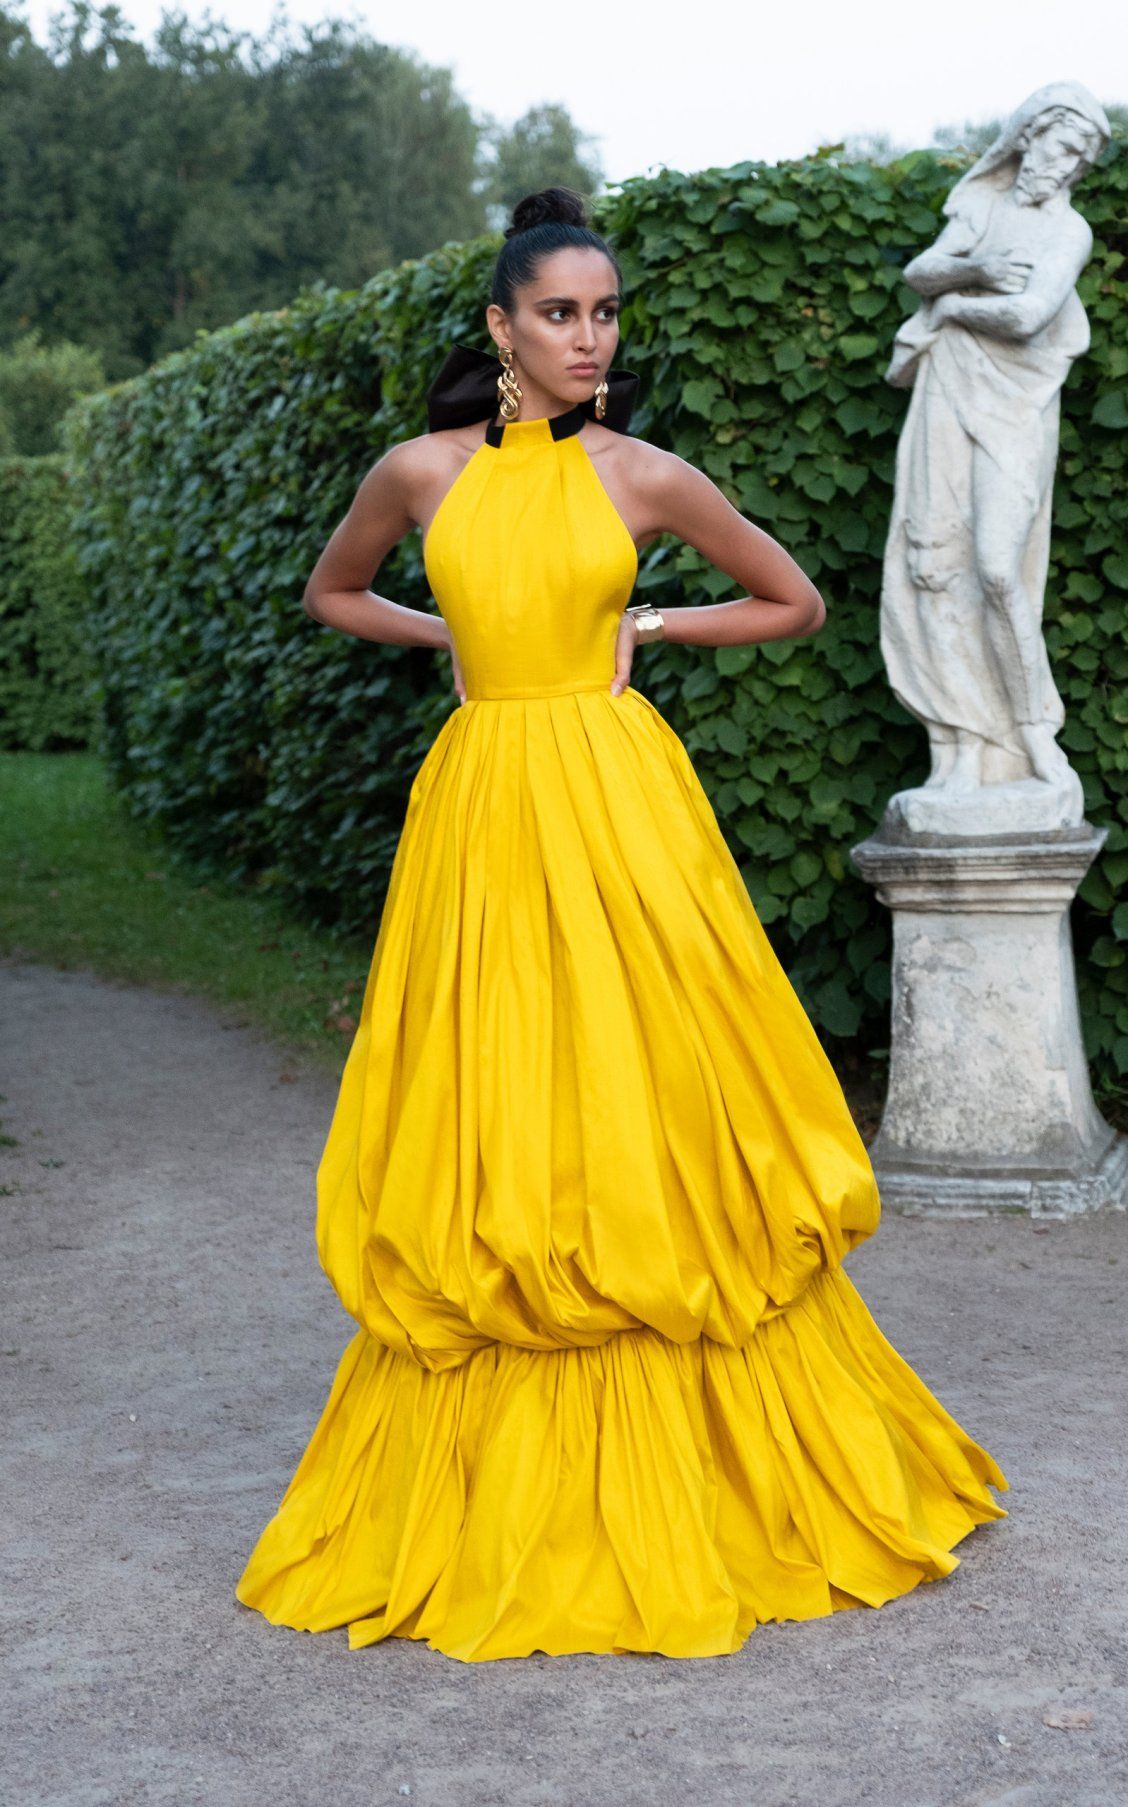 Wedding decorations yellow and gray november 2018 Tiered Silk BubbleSkirt Gown by Rasario SS  Fashion sketches in